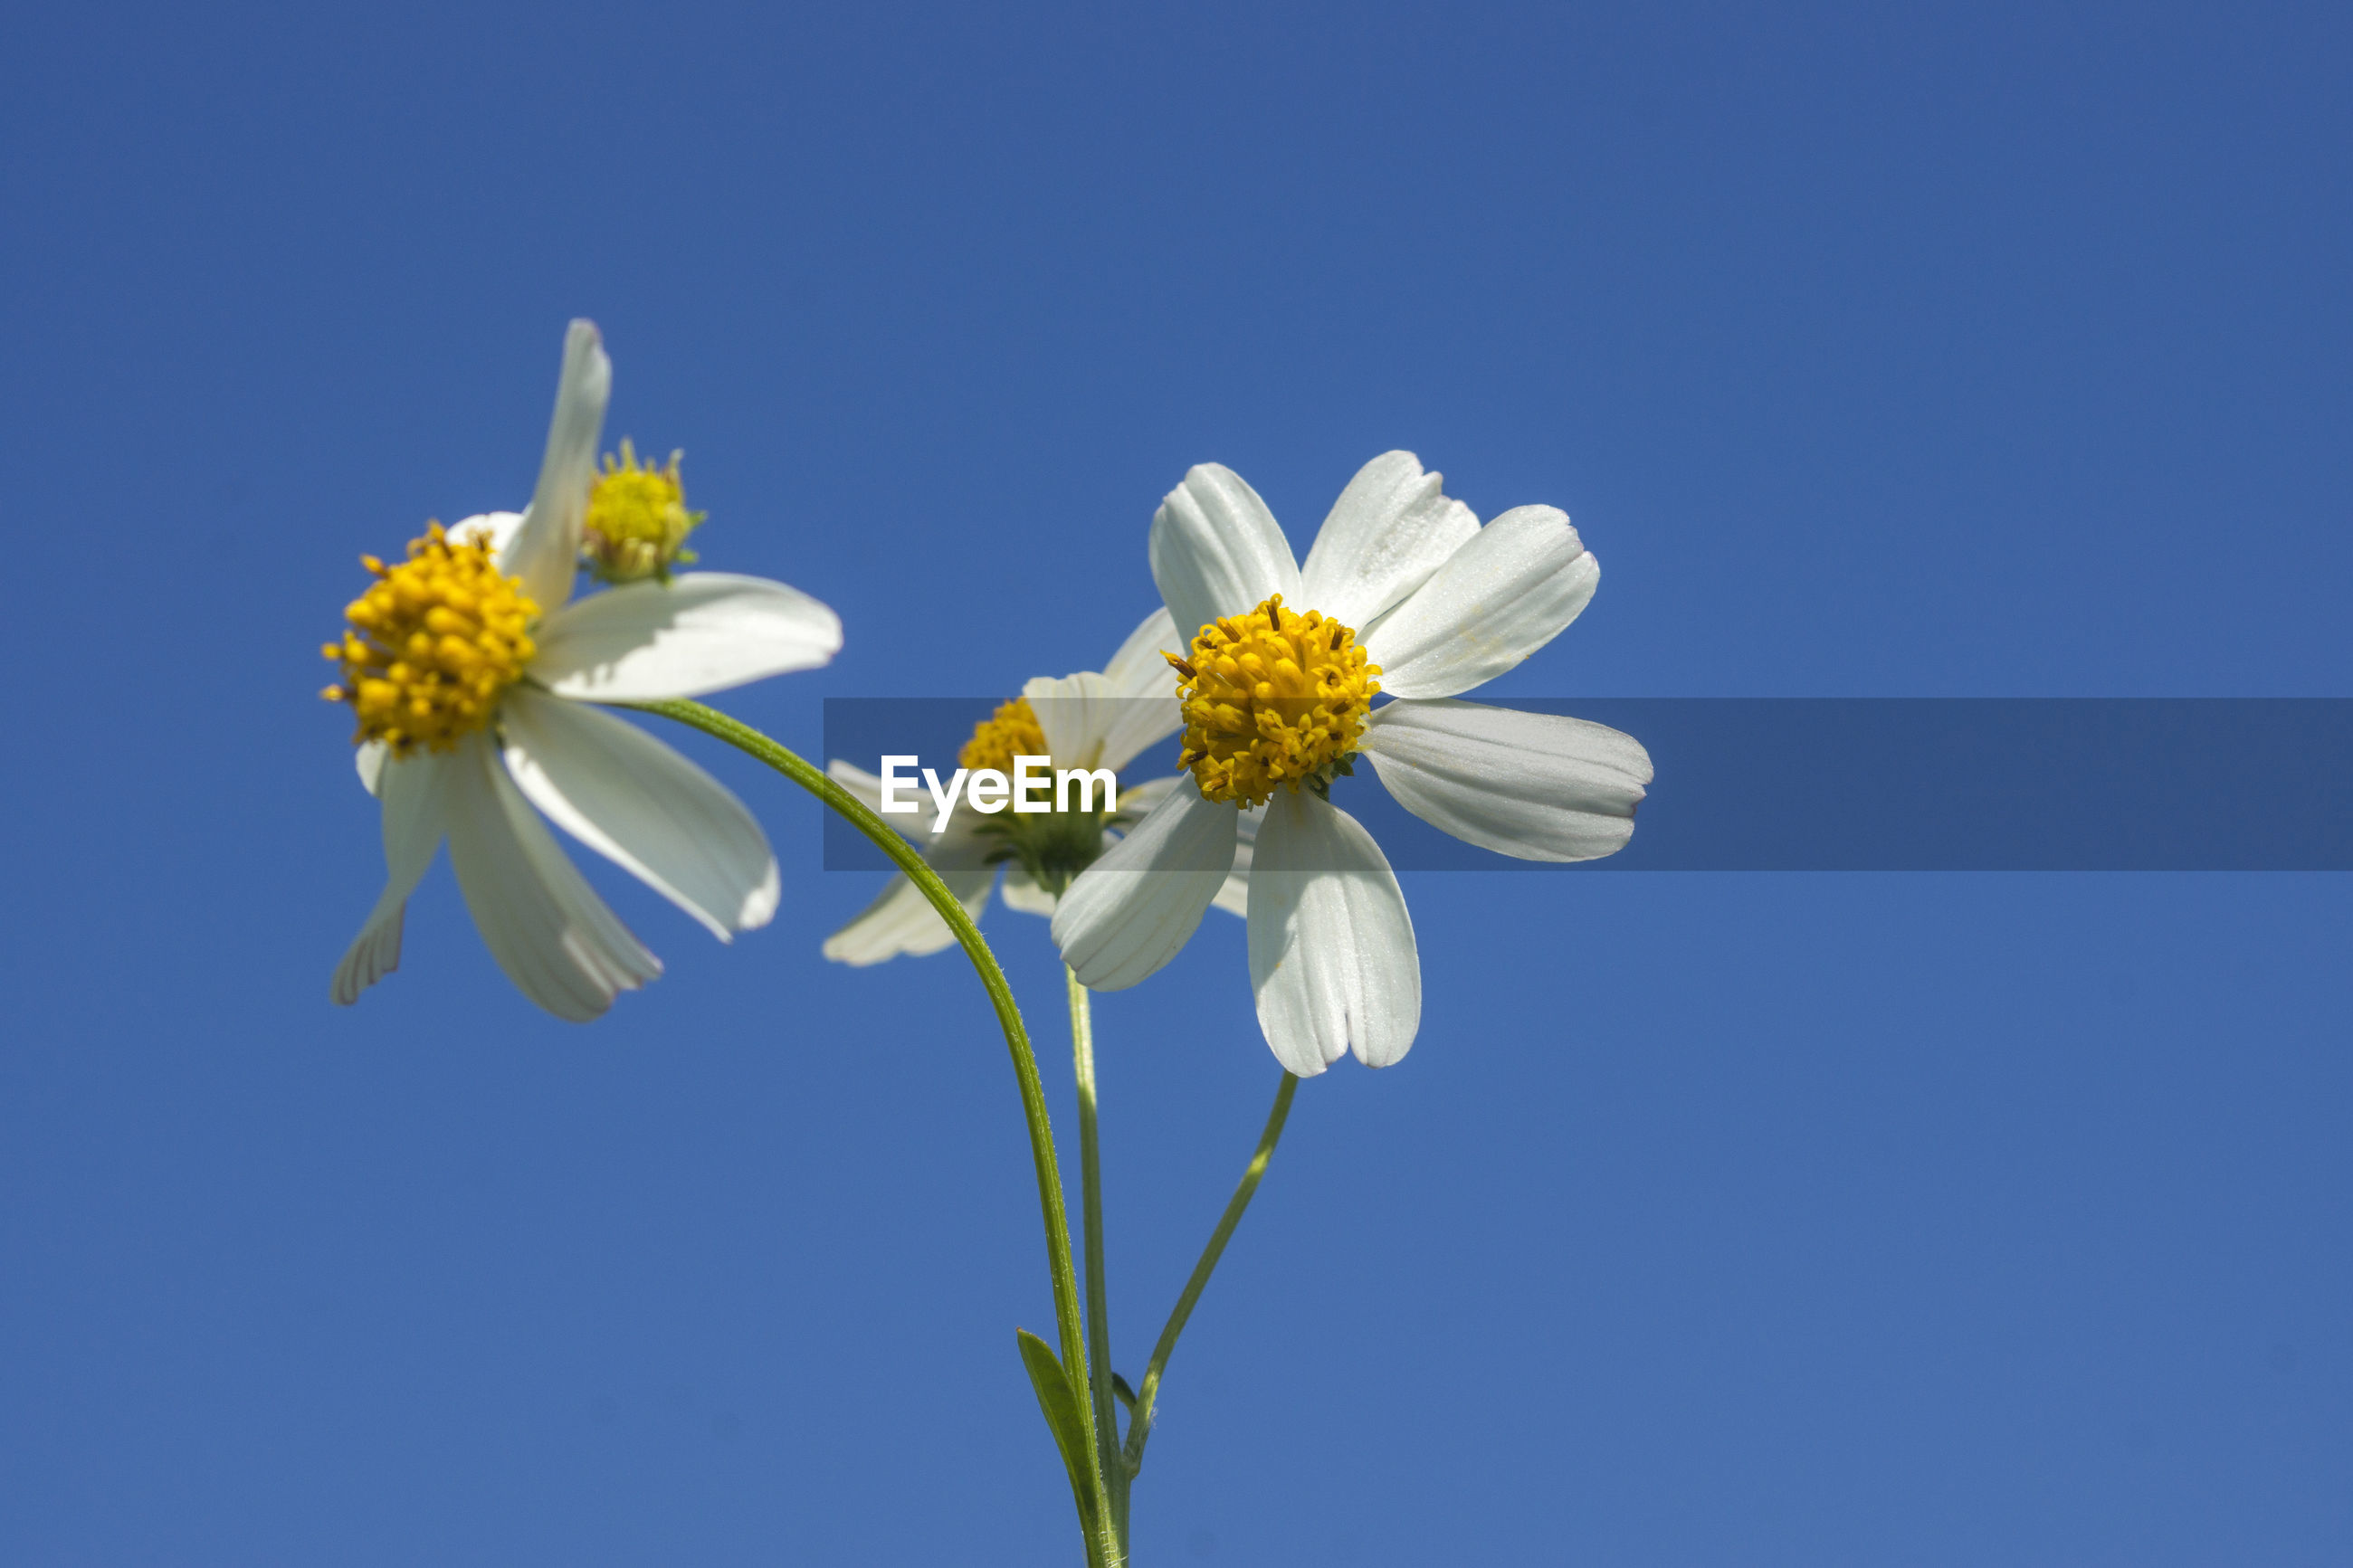 LOW ANGLE VIEW OF WHITE FLOWER AGAINST CLEAR BLUE SKY